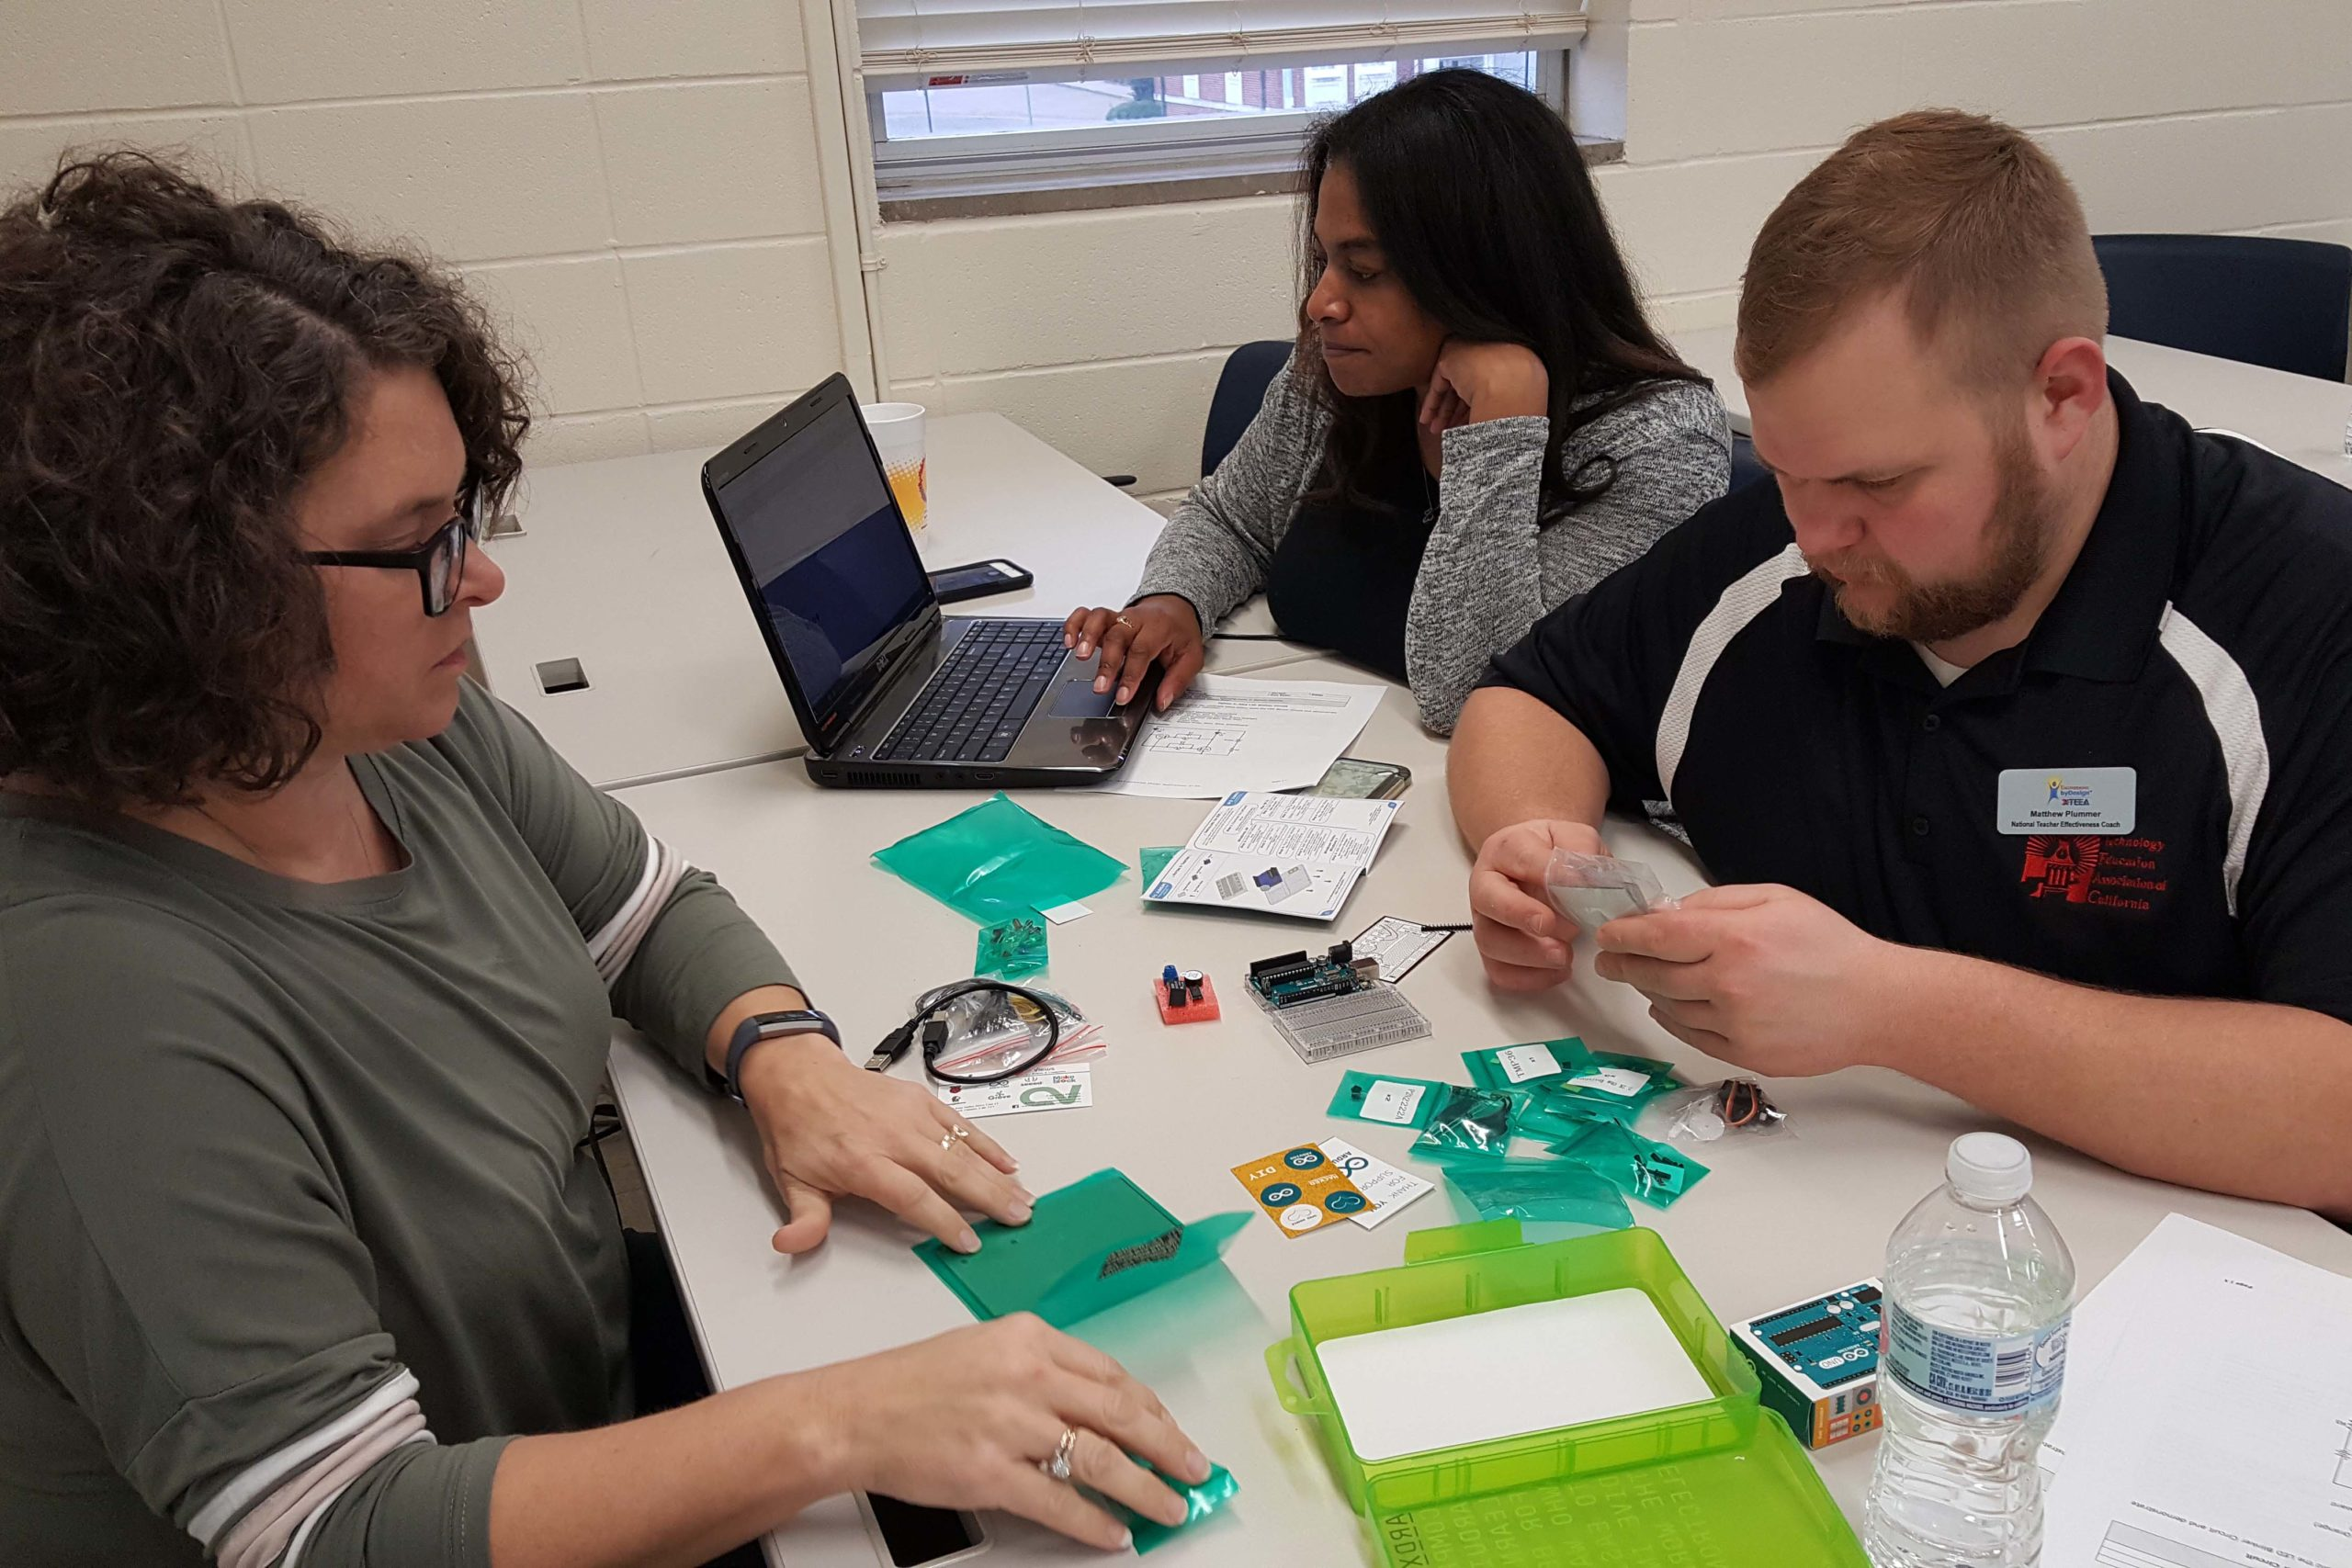 Missy Wooley, Educational Consultant for the Louisiana Department of Education, works with colleagues from across the nation using arduinos during the three-day national ITEEA training at Louisiana Tech's SciTEC in the College of Education.